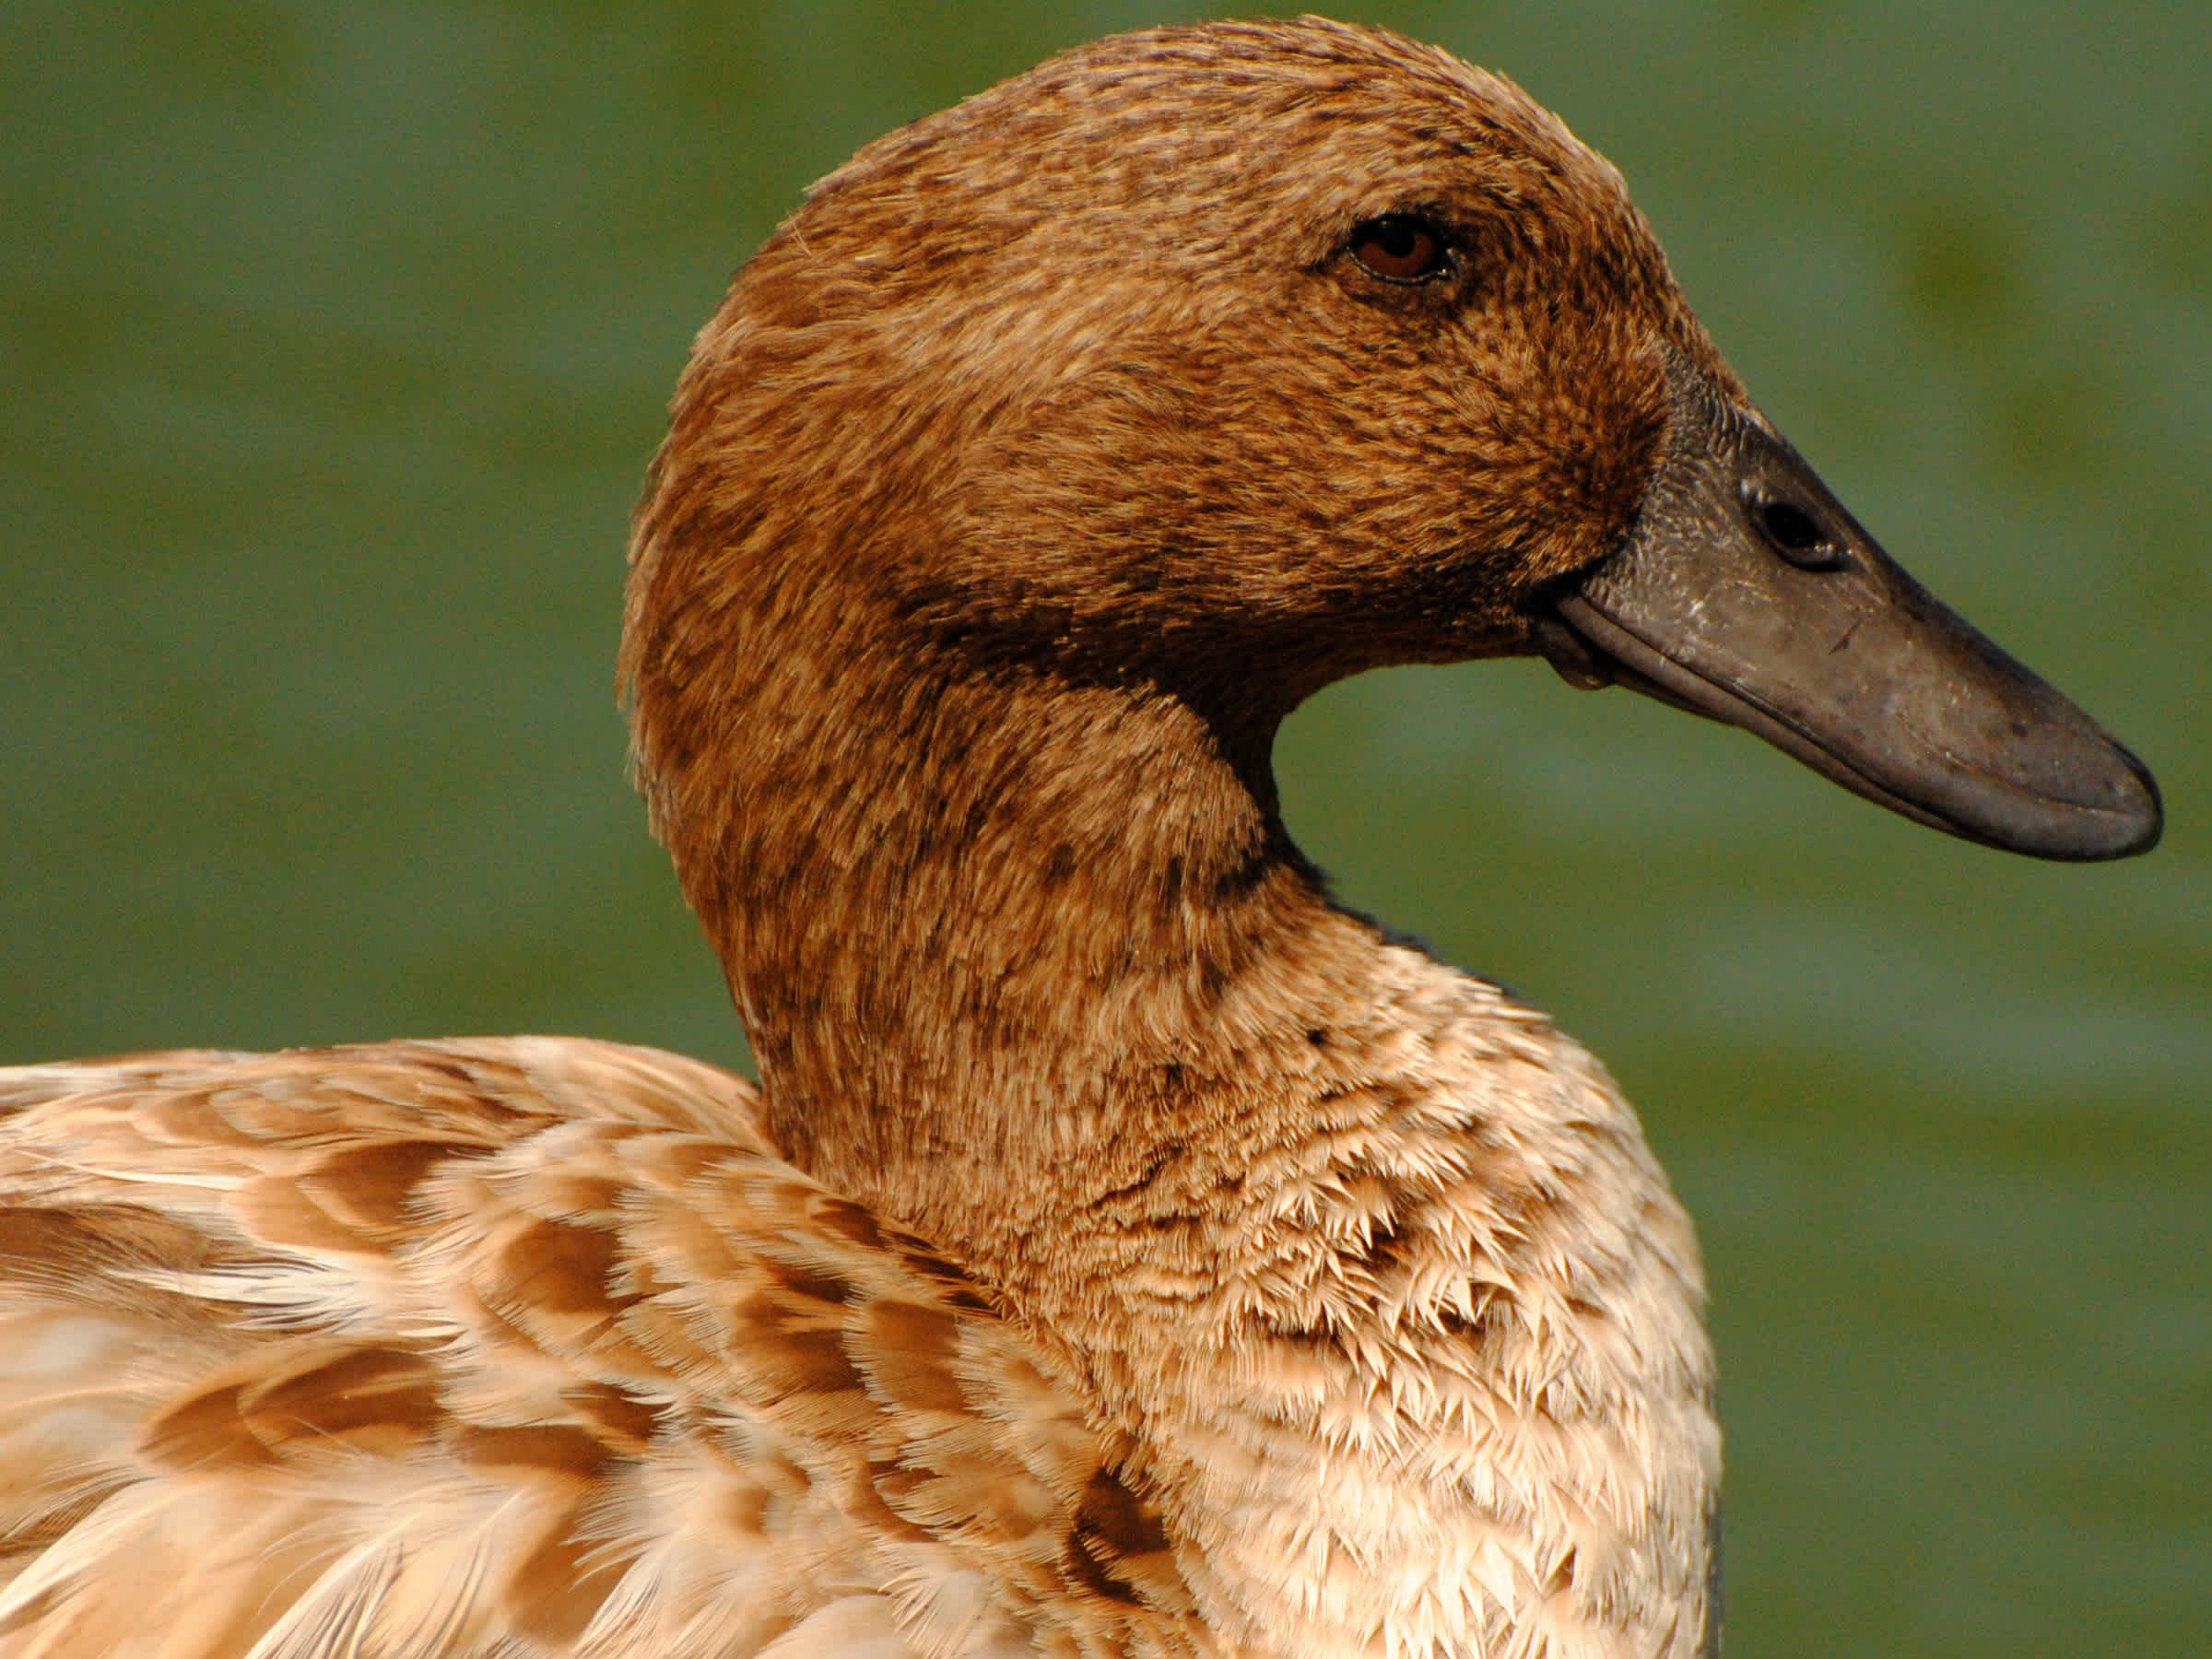 Close-up of brown duck.